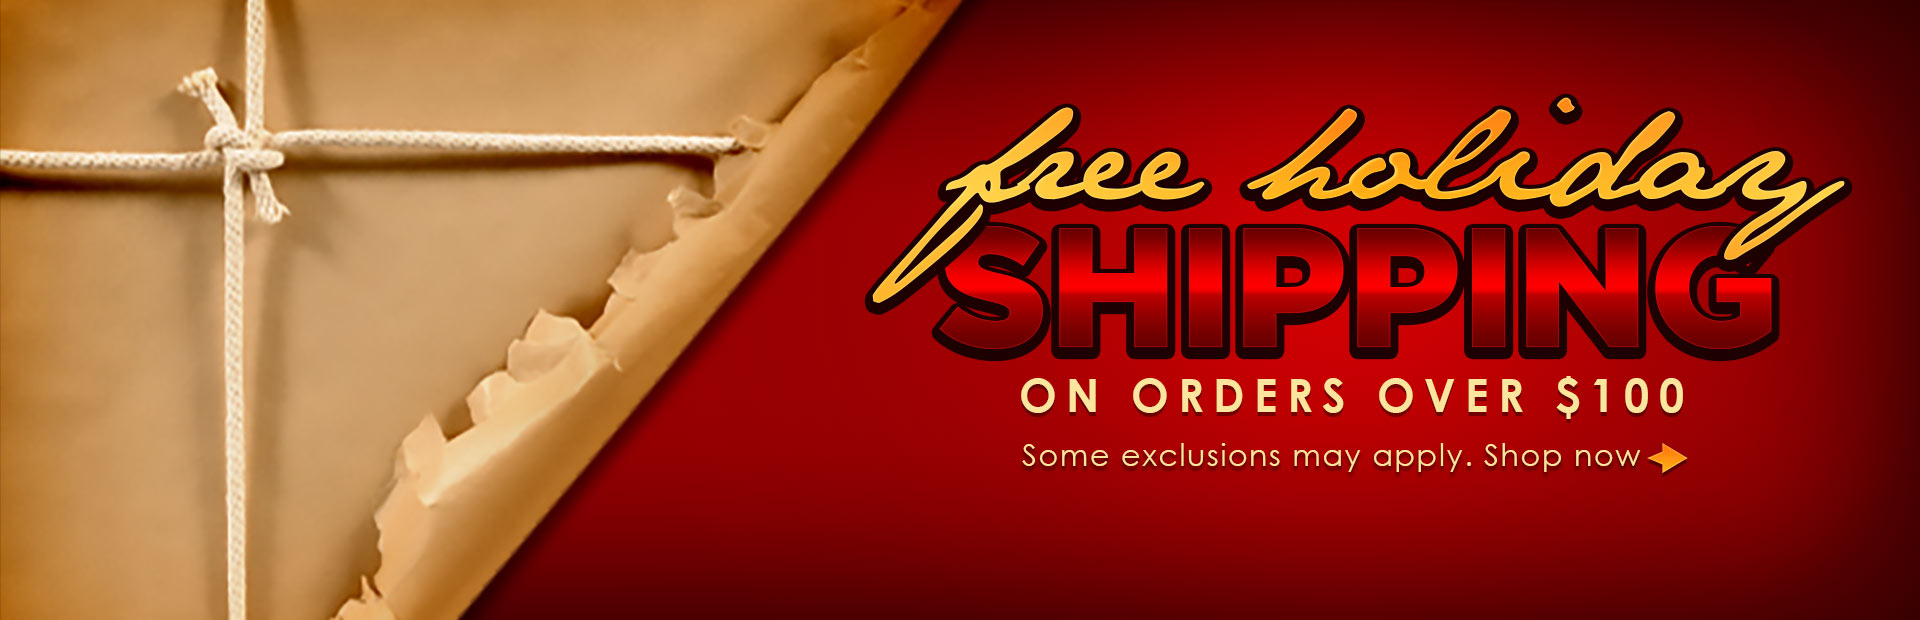 Get free holiday shipping with orders over $100! Click here to shop online.